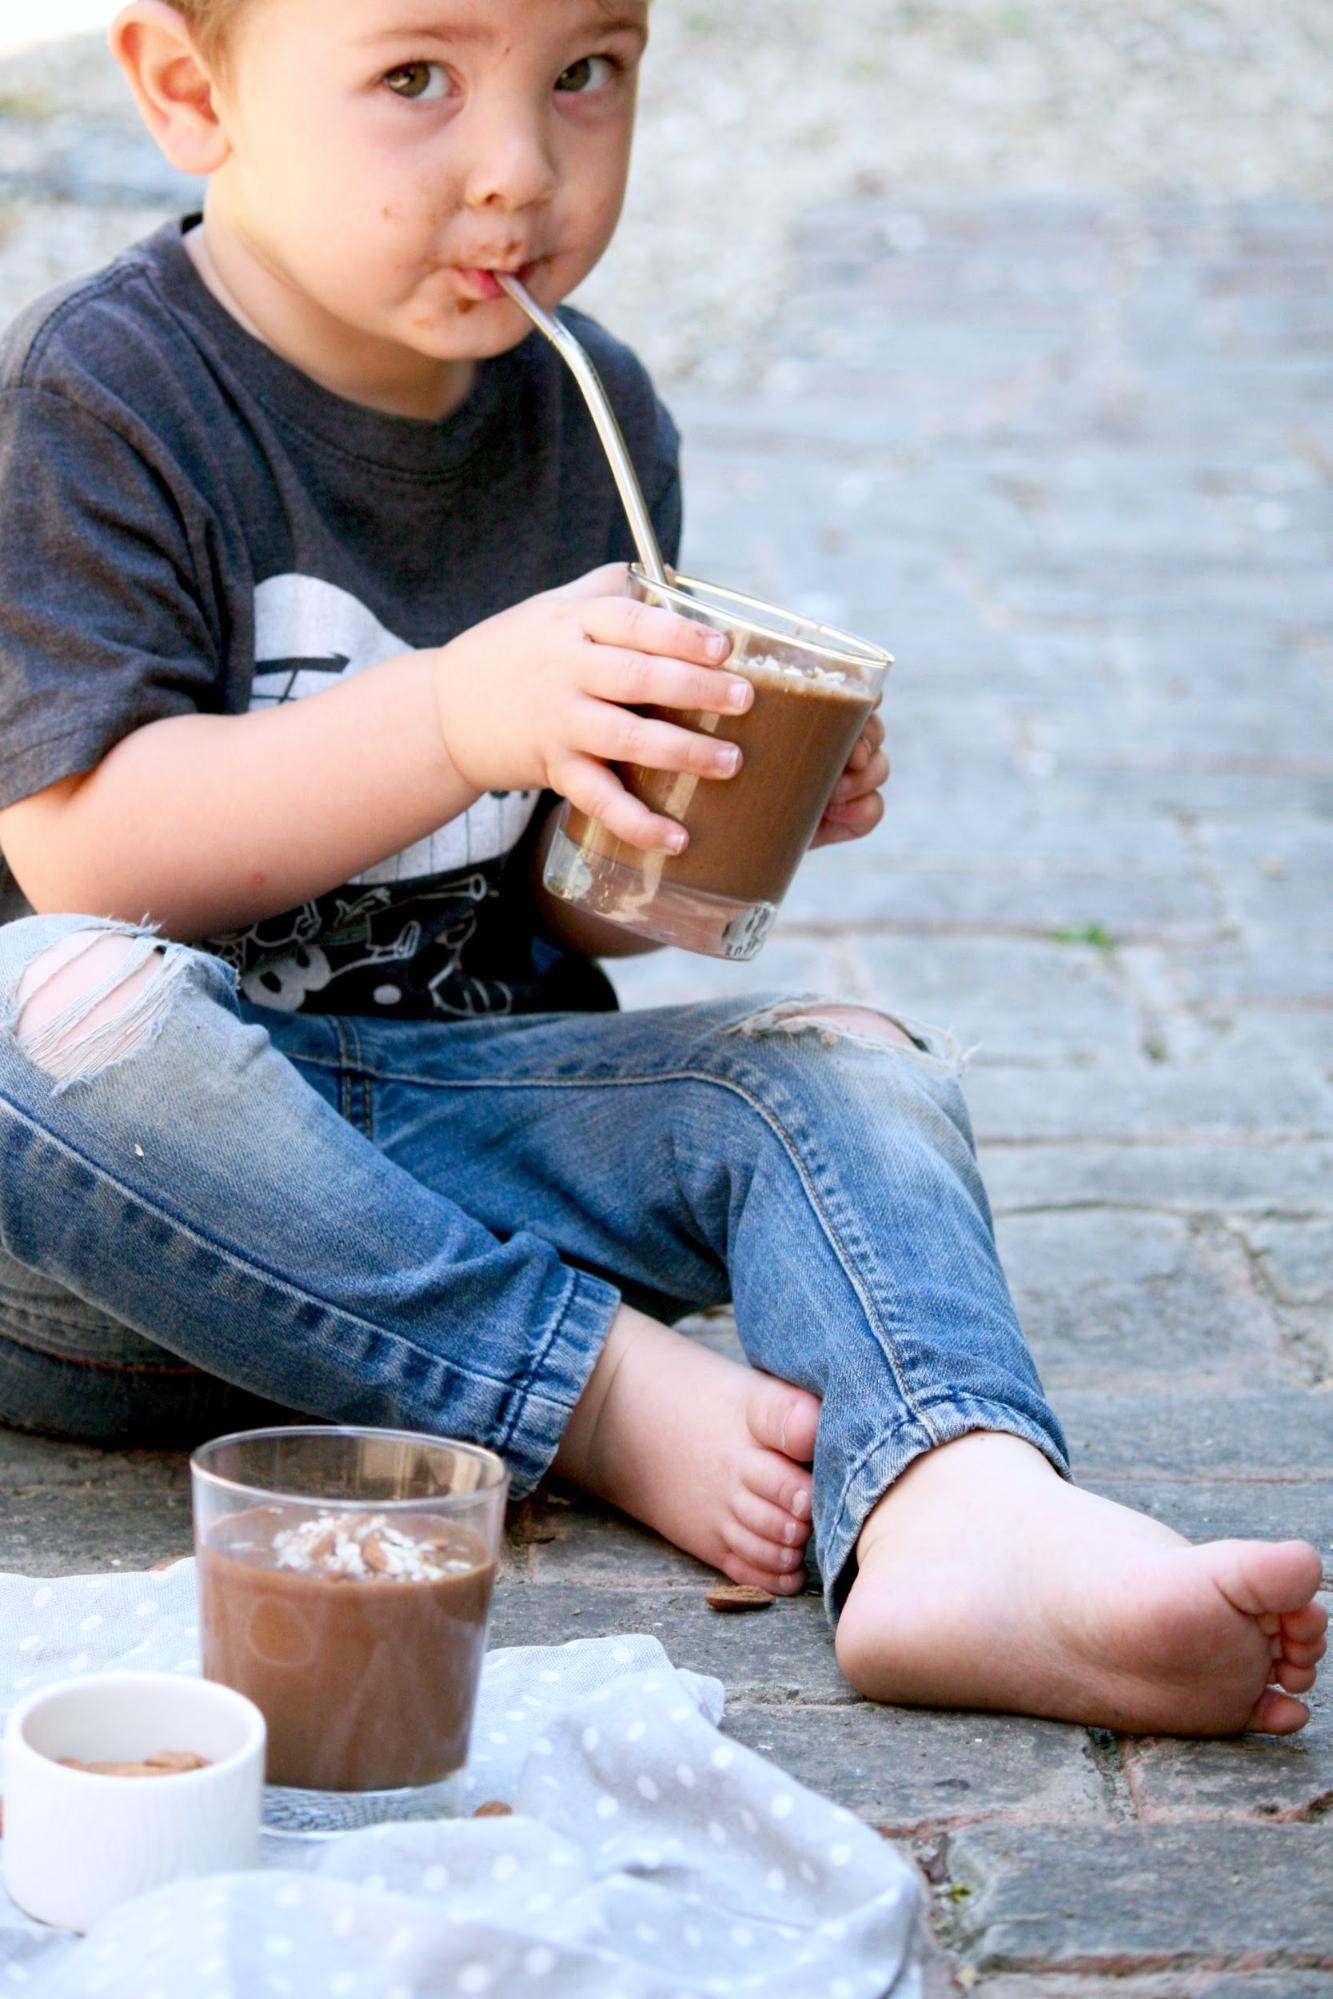 Chocolate Veggie Smoothie for Toddlers Call Me Lore's Turning Picky Kid Eaters Into Healthy Eaters Toddler Healthy Recipes